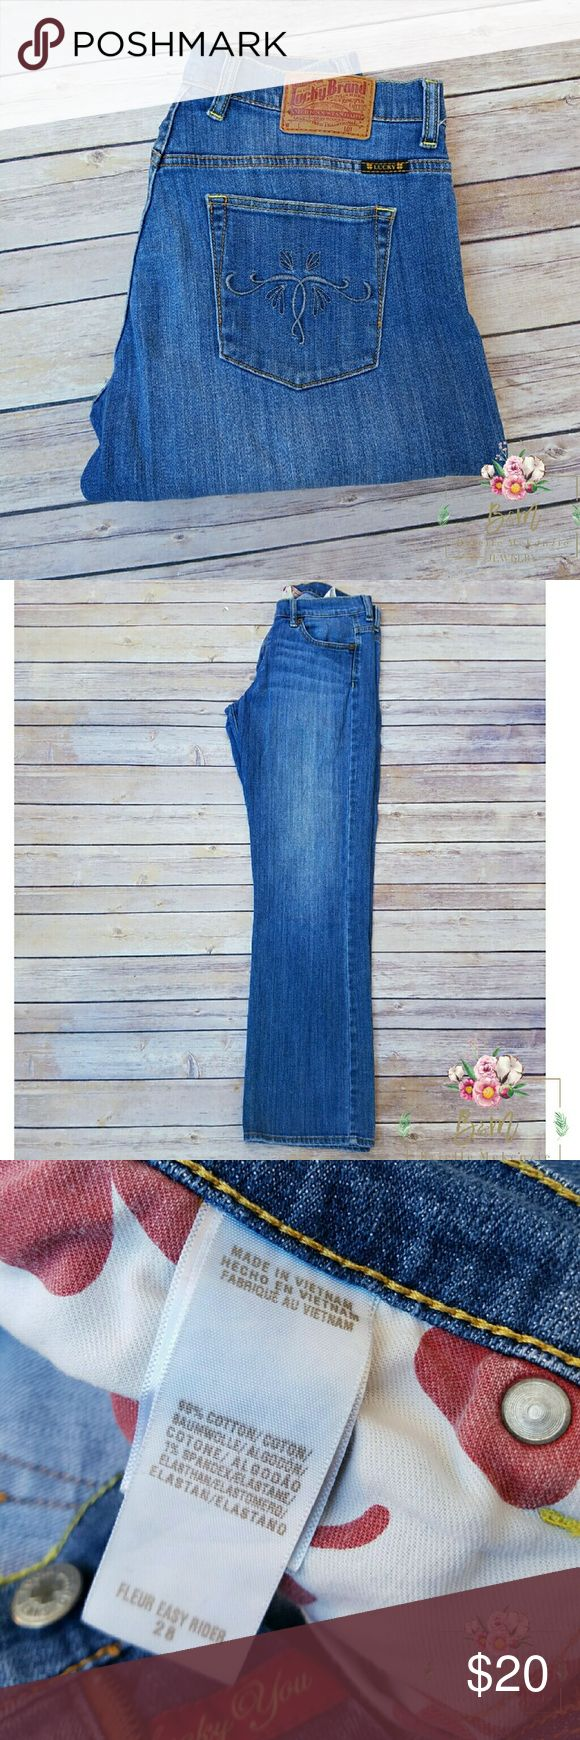 "LUCKY BRAND Fleur Easy Rider Jean Very comfortable and soft. Stretchy. Has been worn in good condition. Has embroidered design on back pocket. 99% Cotton  1% Spandex  Measurements  Band 32"" Inseam 31"" Lucky Brand Jeans Boot Cut"